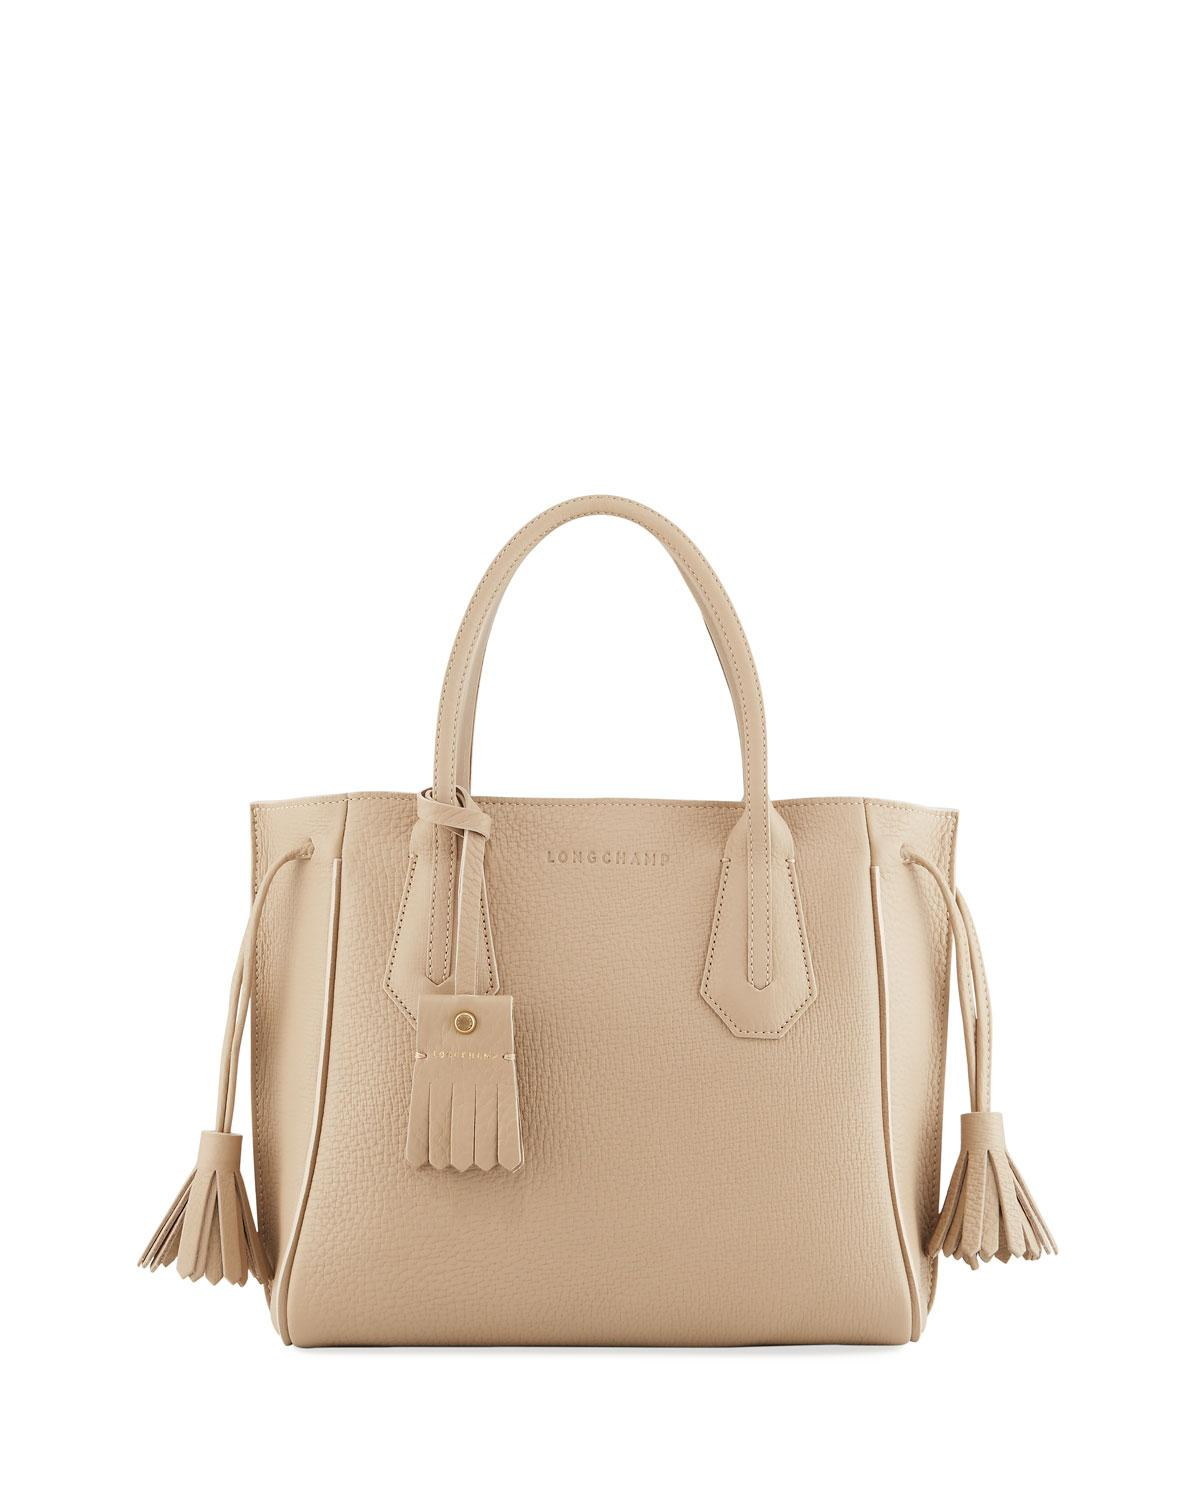 a67a9ce7f Longchamp Penelope Small Leather Tote Bag In Beige | ModeSens